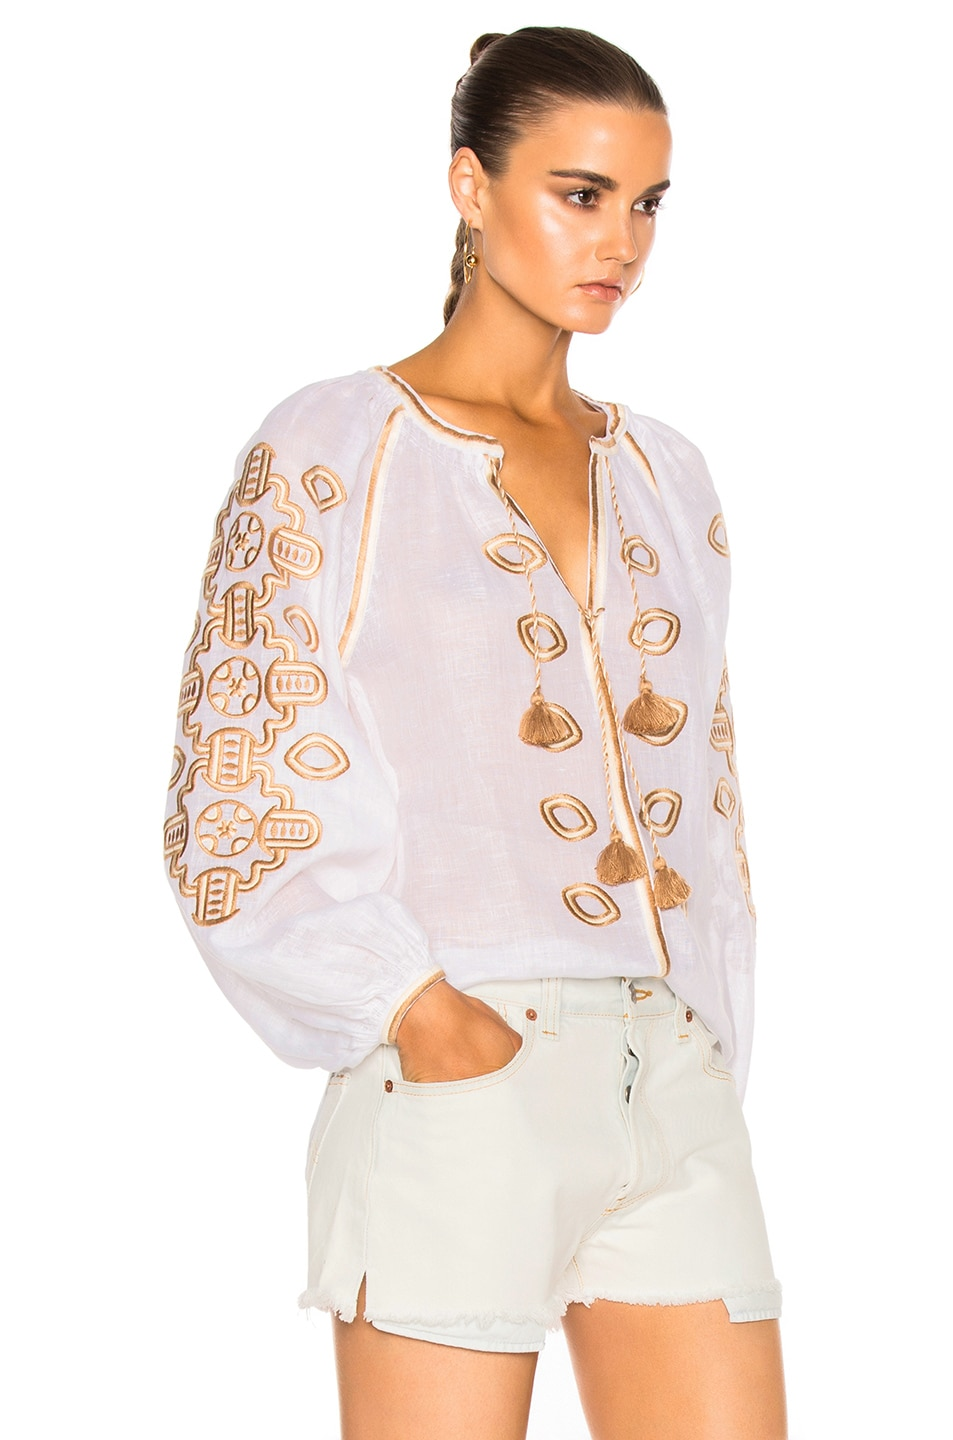 Image 3 of March 11 African Embroidered Top in Tan & White